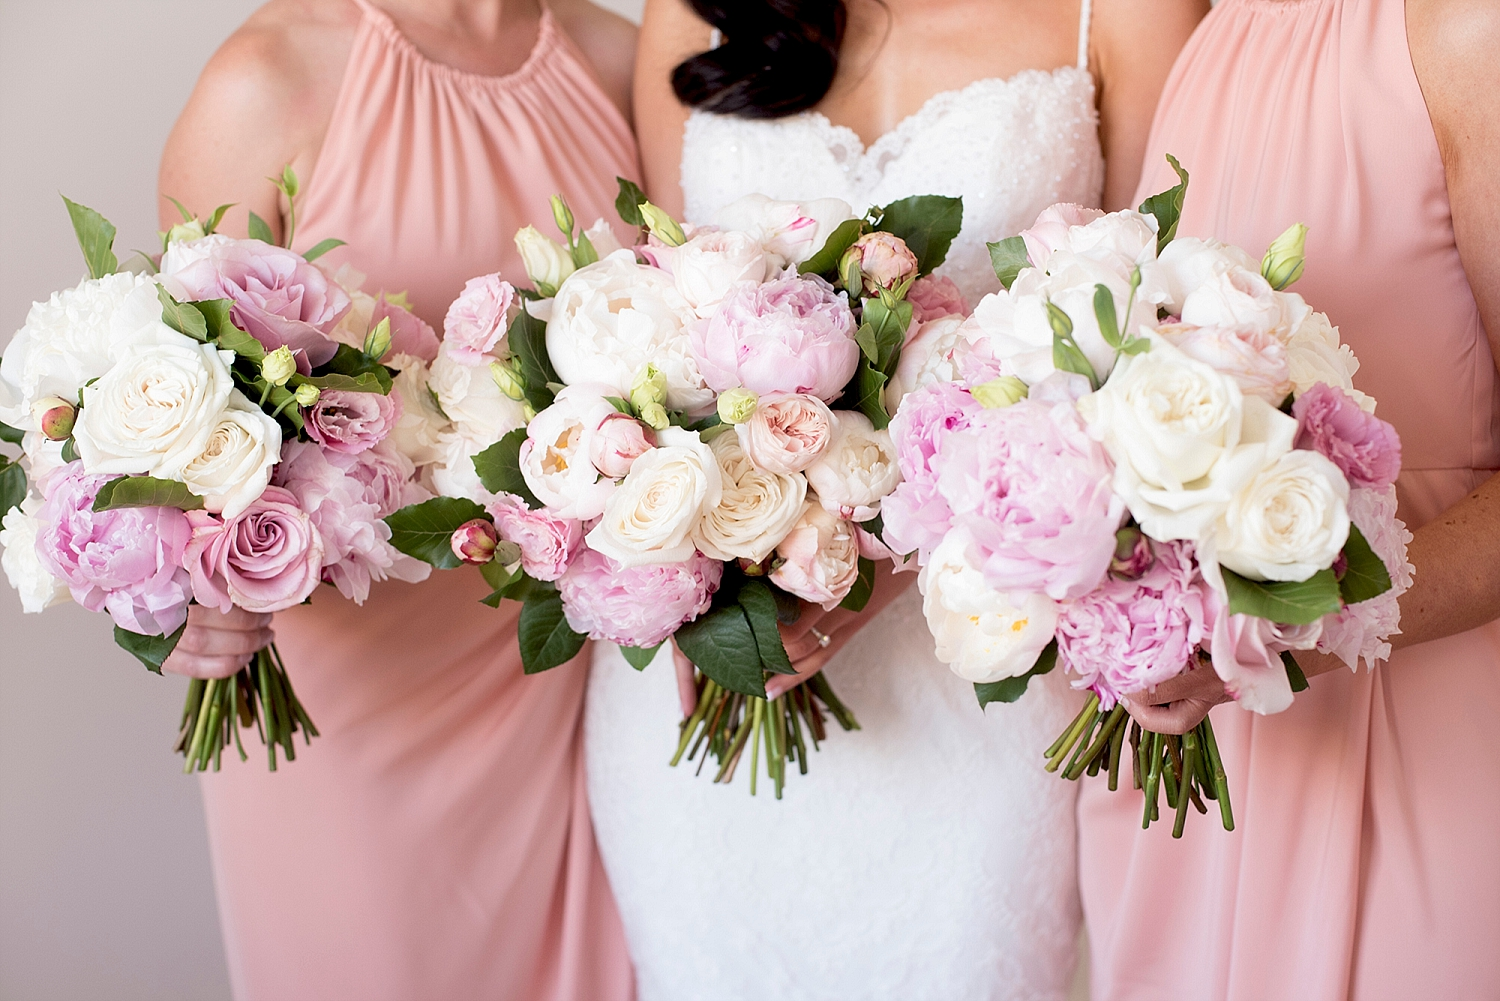 12_pink bouquets with peonies perth.jpg